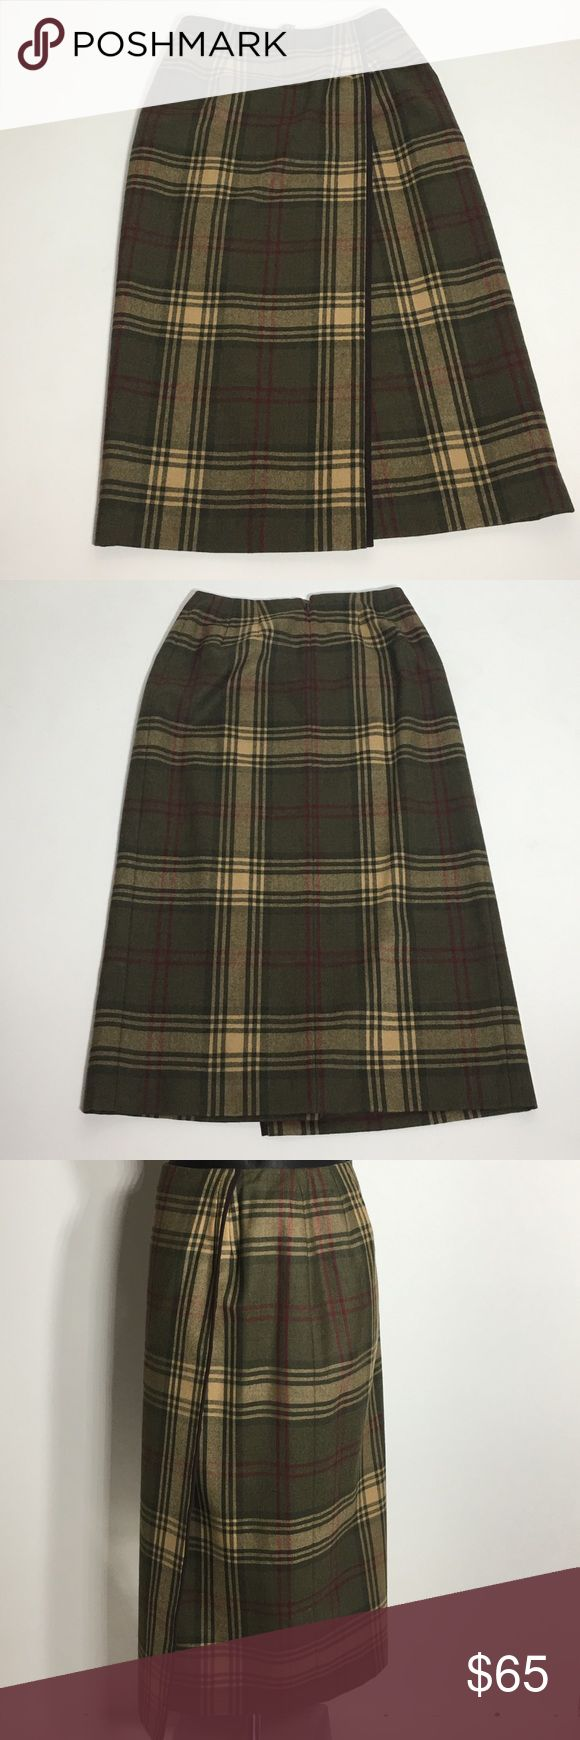 """Talbots Long Plaid Petite Skirt - Size 4 Shell 100% Wool.  Lining 100% Polyester. Made in Guatemala.  Imported fabric. Approx measurements (Flat, no stretching): Waist 13"""".  Length 32"""".  Please ask questions before purchasing.  Gently Used Condition.  See pictures for more information and description details.  Thank you for stopping by my closet.  Sparkles ✨ and Happy Poshing!  📌Fair Offers Considered Talbots Skirts"""